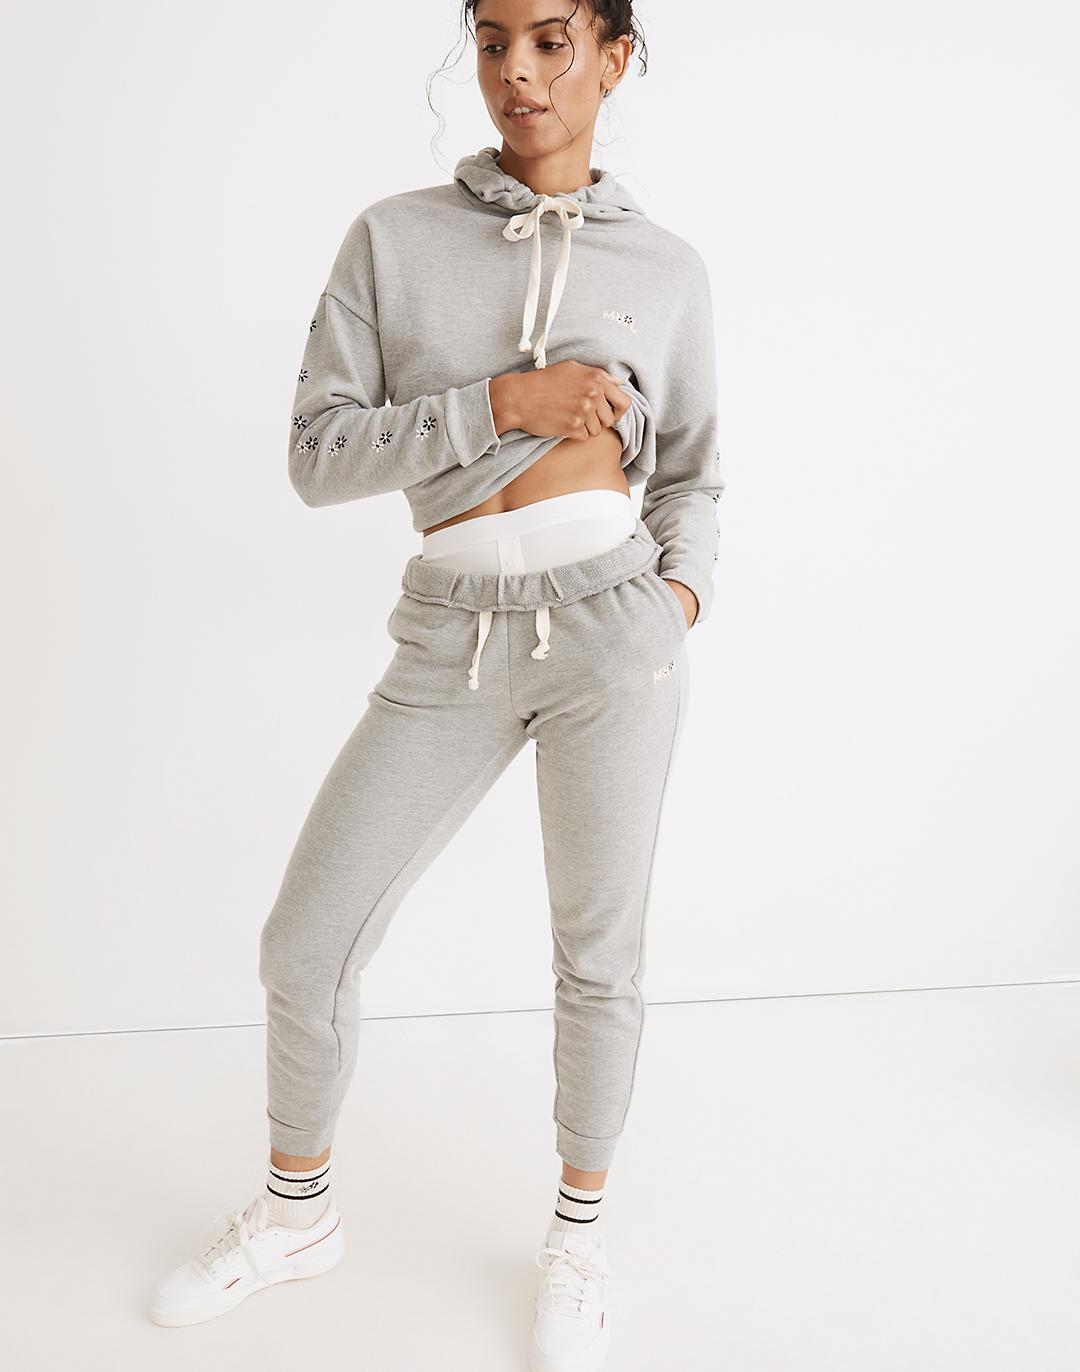 MWL Easygoing Sweatpants: Flower Embroidered Edition